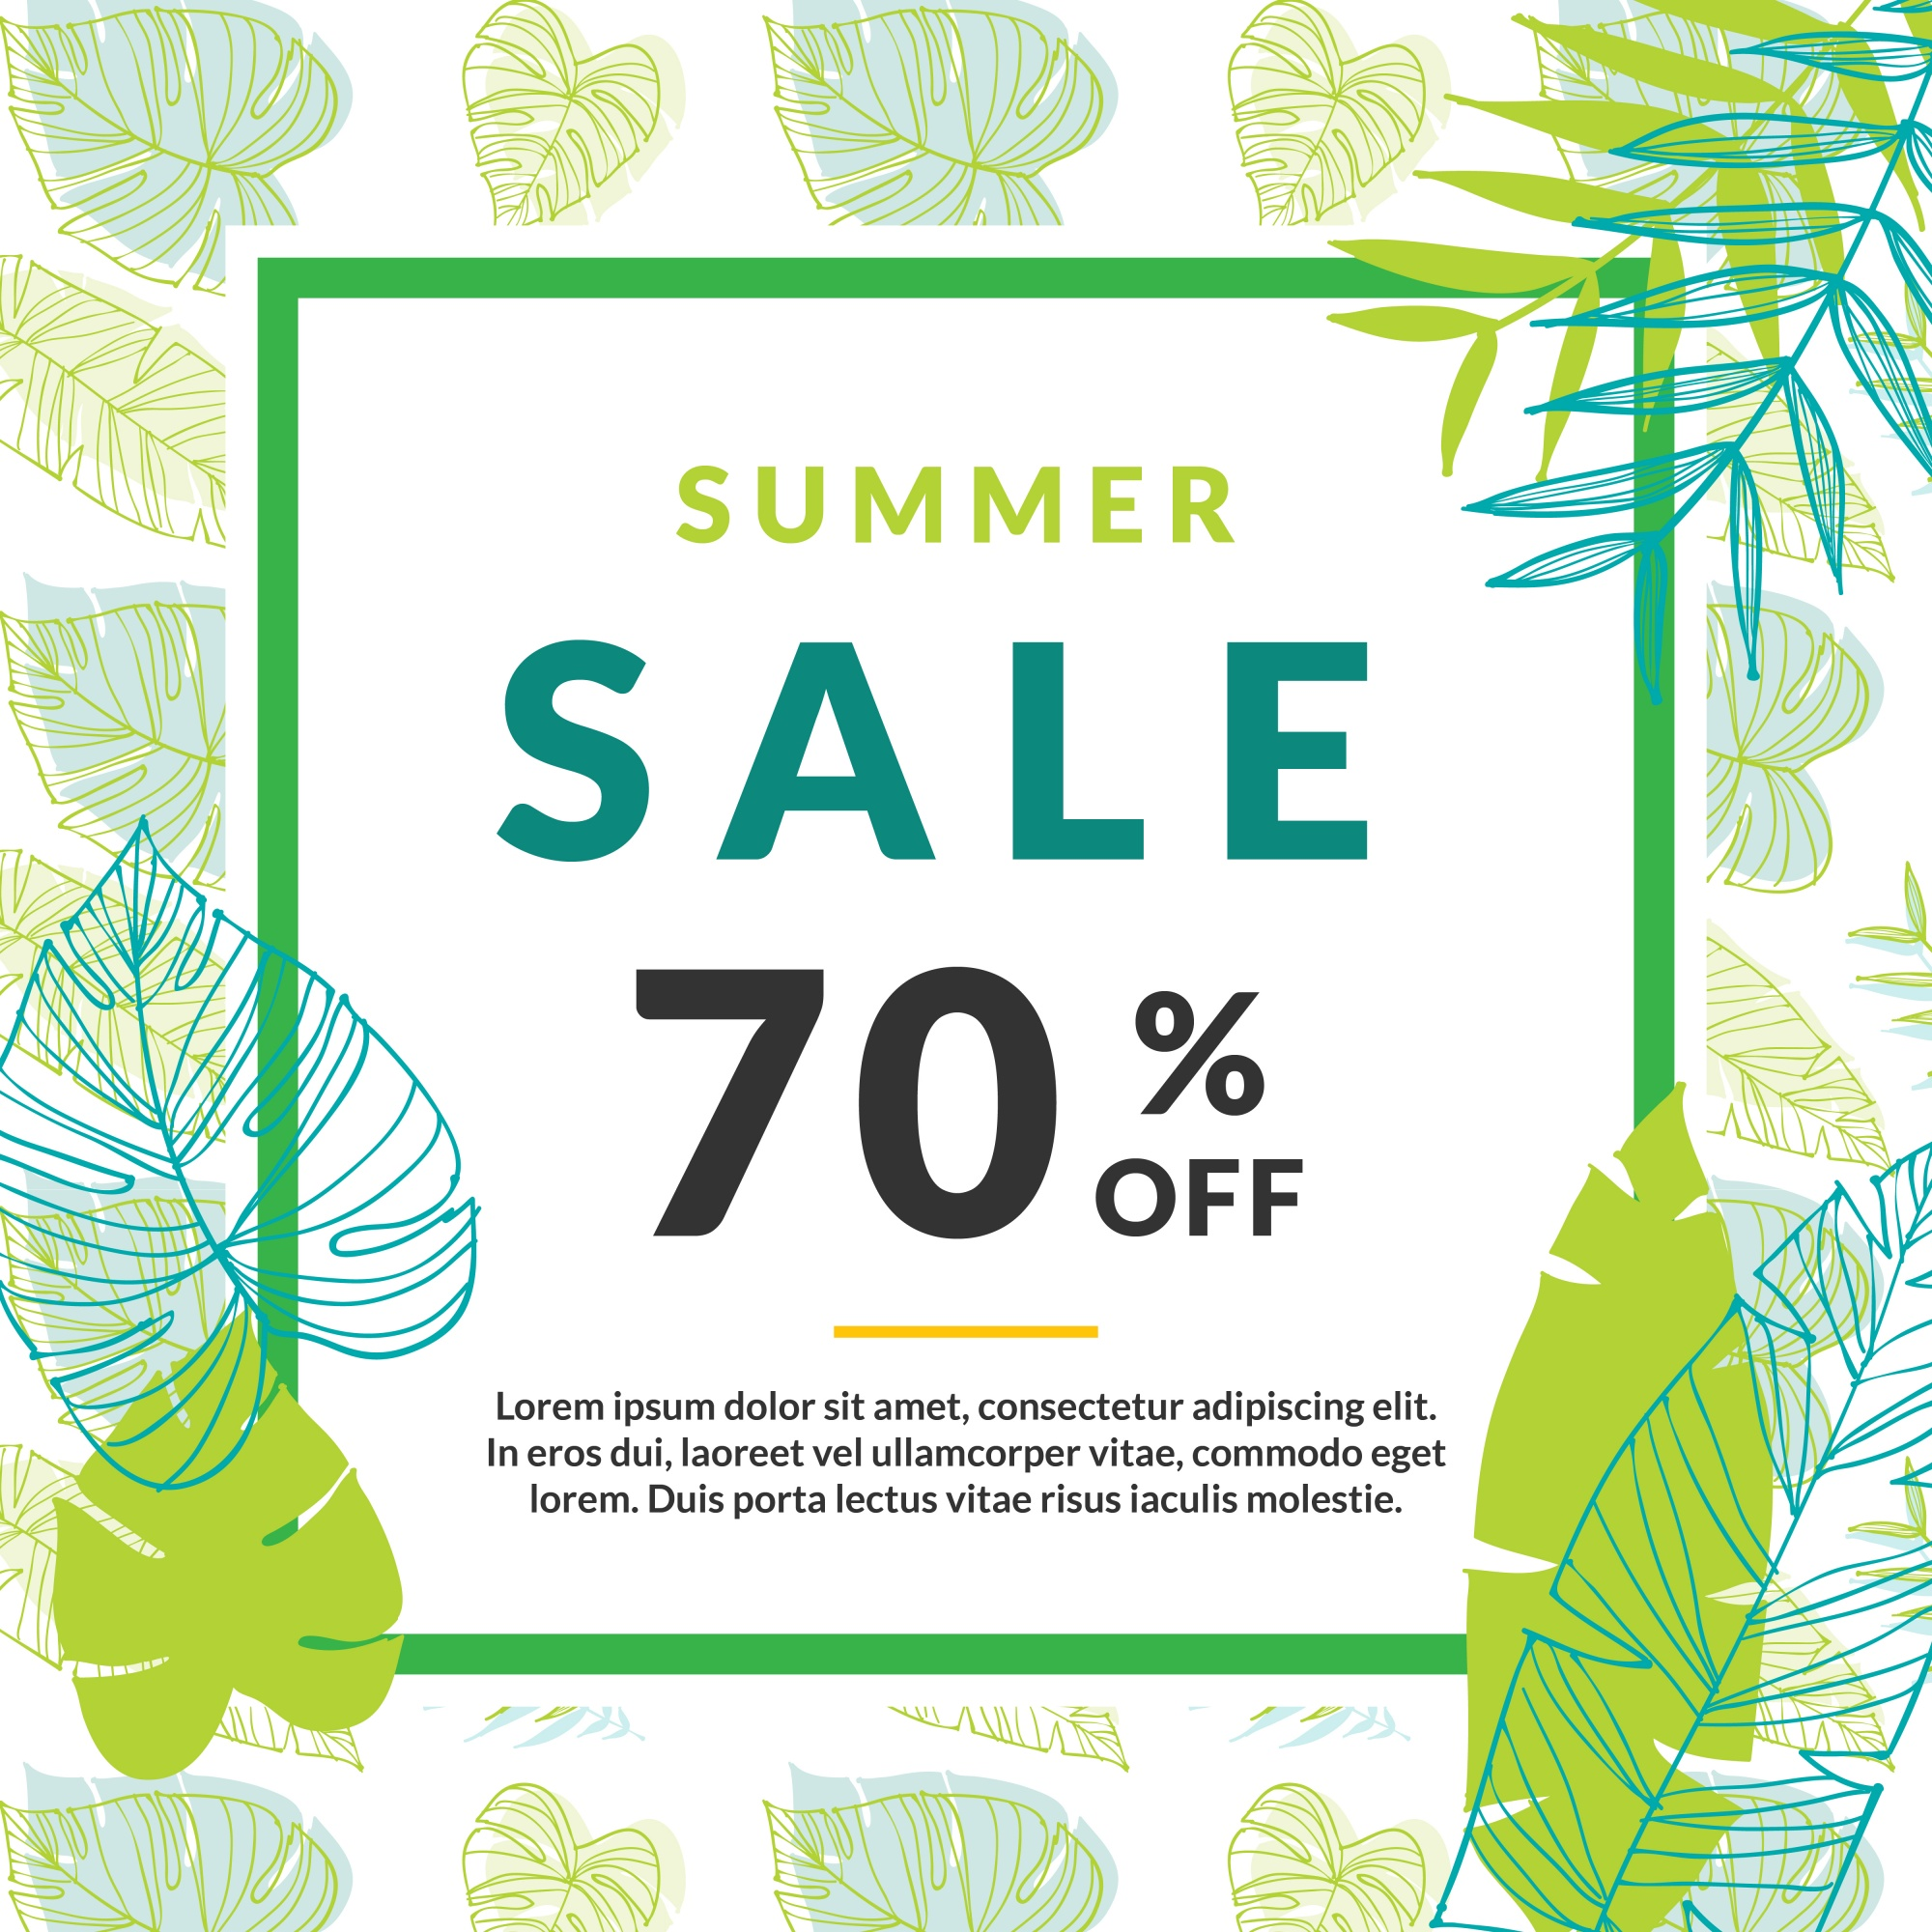 Summer sale template with palm leaves